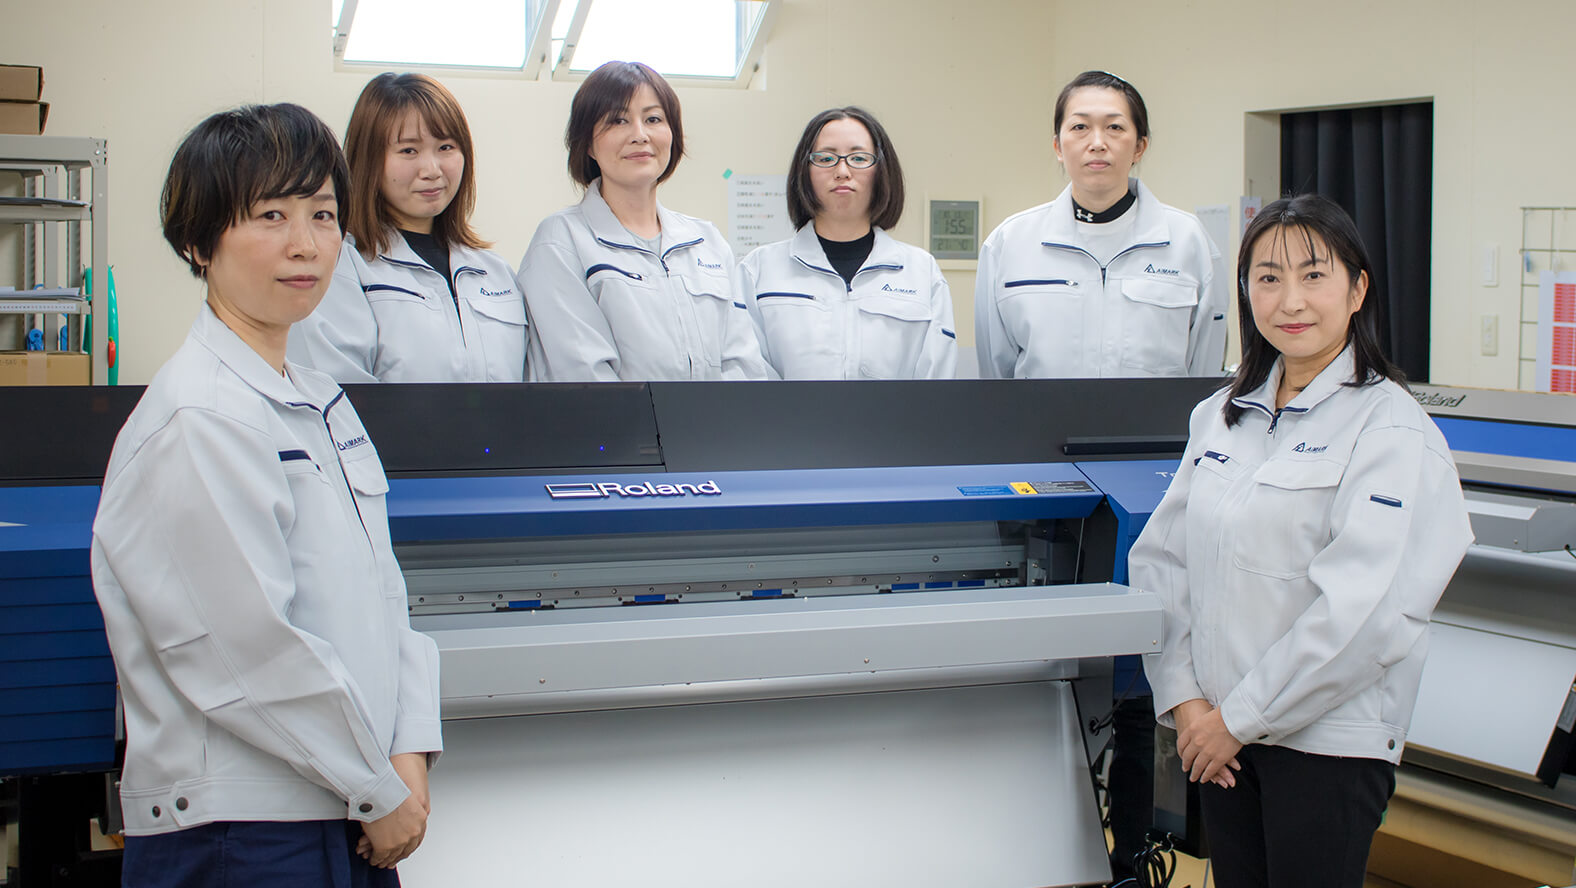 AIMARK President Seiko Kayakabe (front right), Shiho Fujiwara (front left) who is in charge of printing operations and staff members